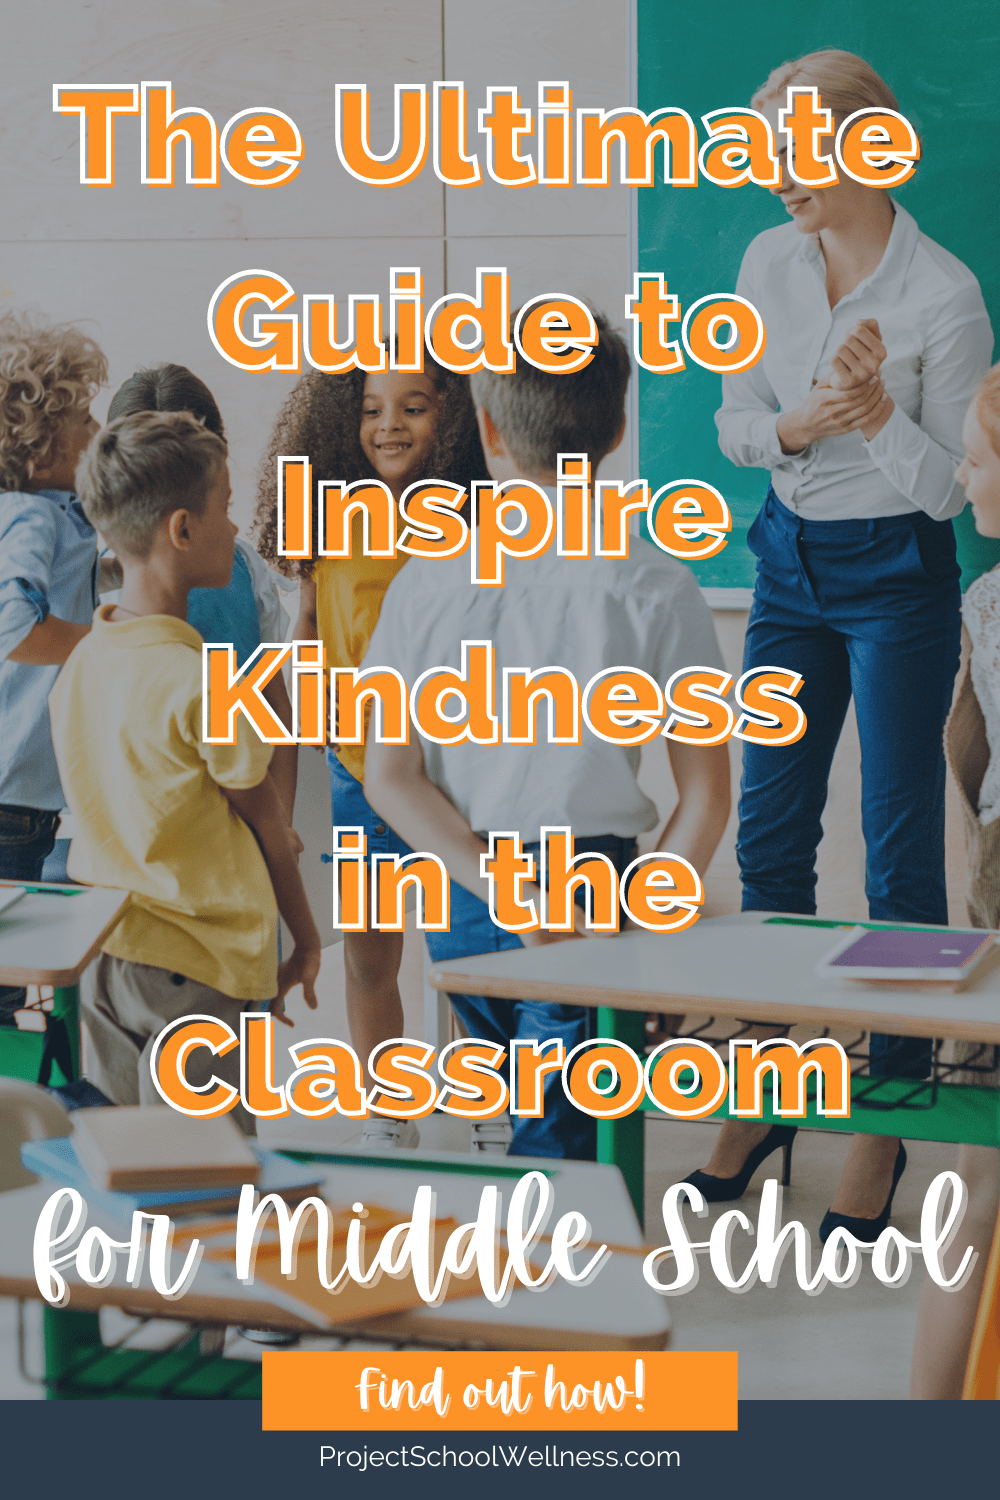 How to Create a Standard of Kindness - a project school wellness blog and teaching resource